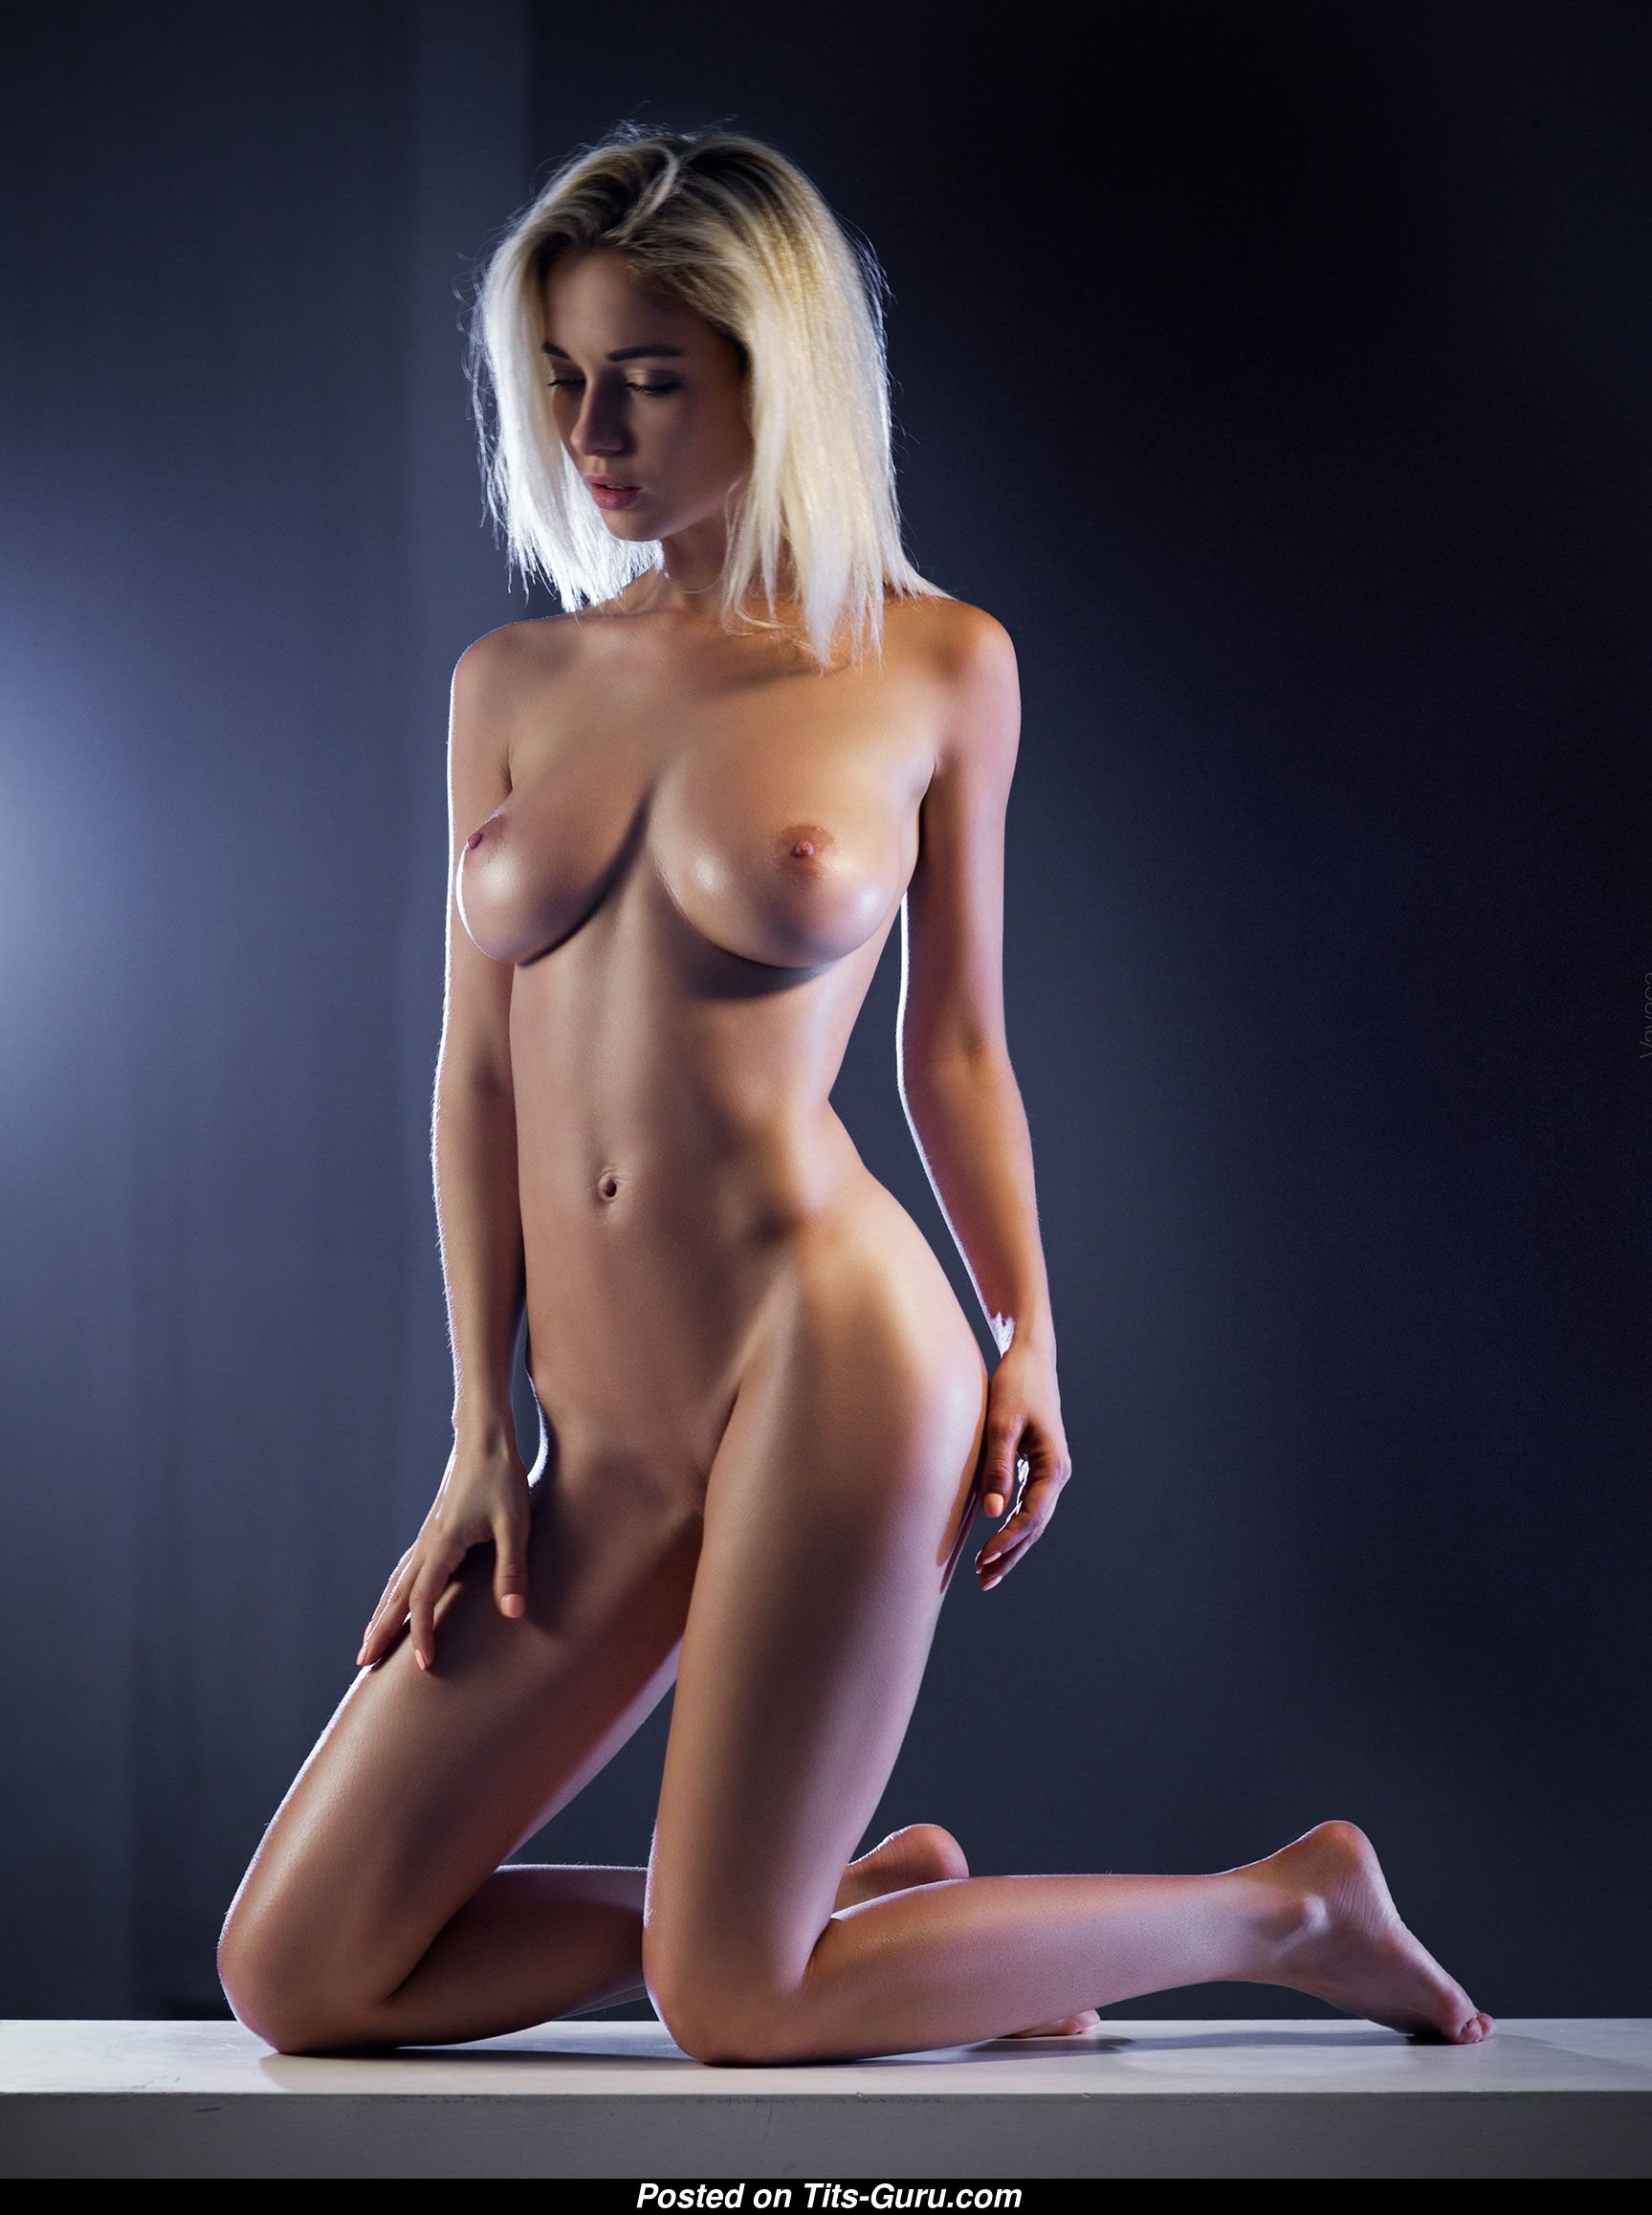 Natalia Andreeva - Topless & Glamour Blonde with Big ...